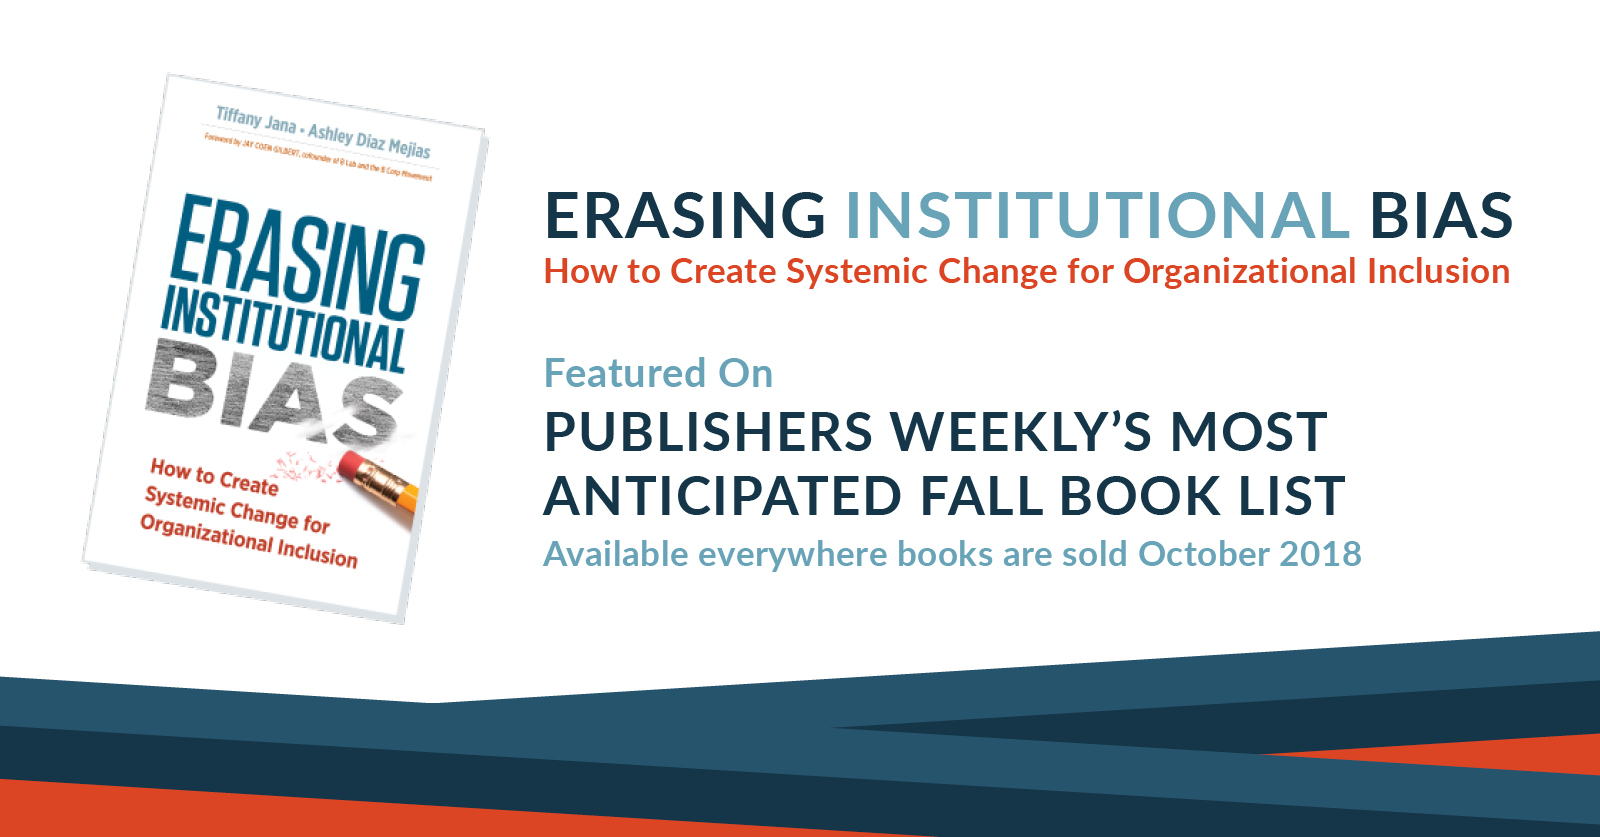 Erasing institutional bias is one of Publishers Weekly most anticipated fall books.